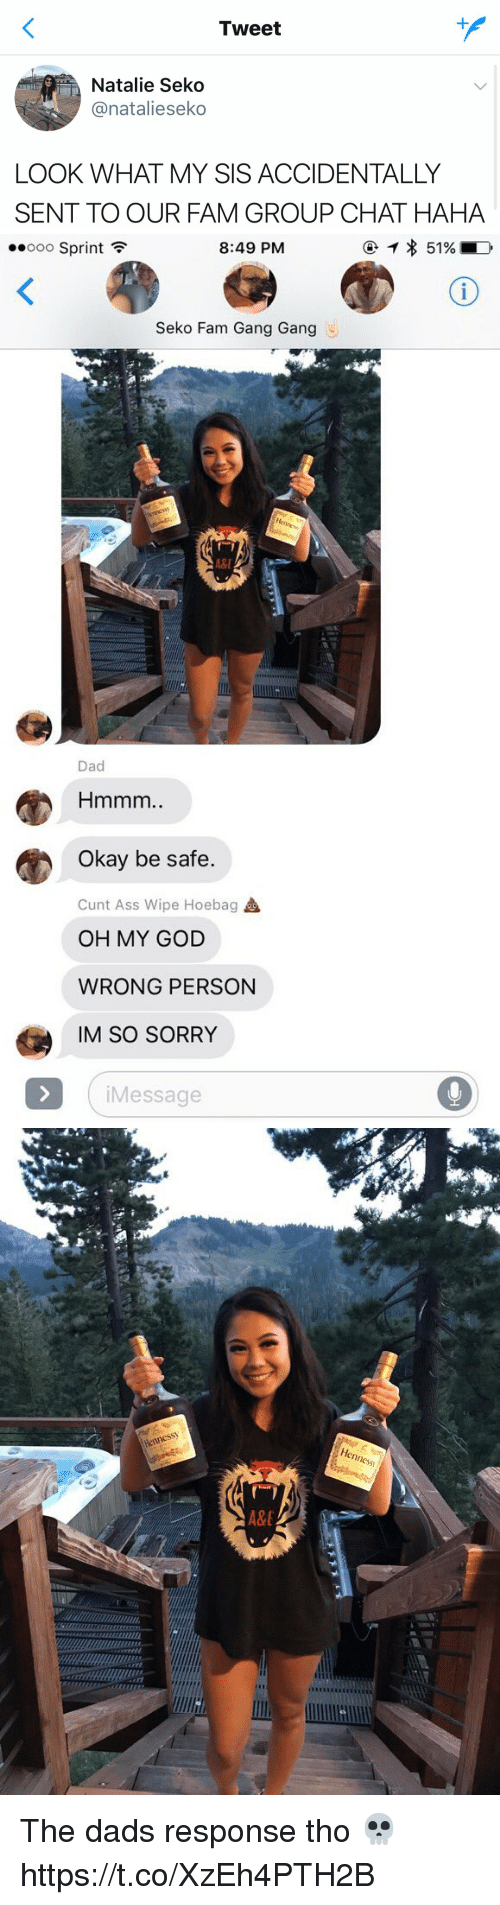 Ooo ~: Tweet  Natalie Seko  @natalieseko  LOOK WHAT MY SIS ACCIDENTALLY  SENT TO OUR FAM GROUP CHAT HAHA   ..ooo Sprint  8:49 PM  Seko Fam Gang Gang  Dad  Hmmm  Okay be safe.  Cunt Ass Wipe Hoebag  OH MY GOD  WRONG PERSON  IM SO SORRY  Message The dads response tho 💀 https://t.co/XzEh4PTH2B